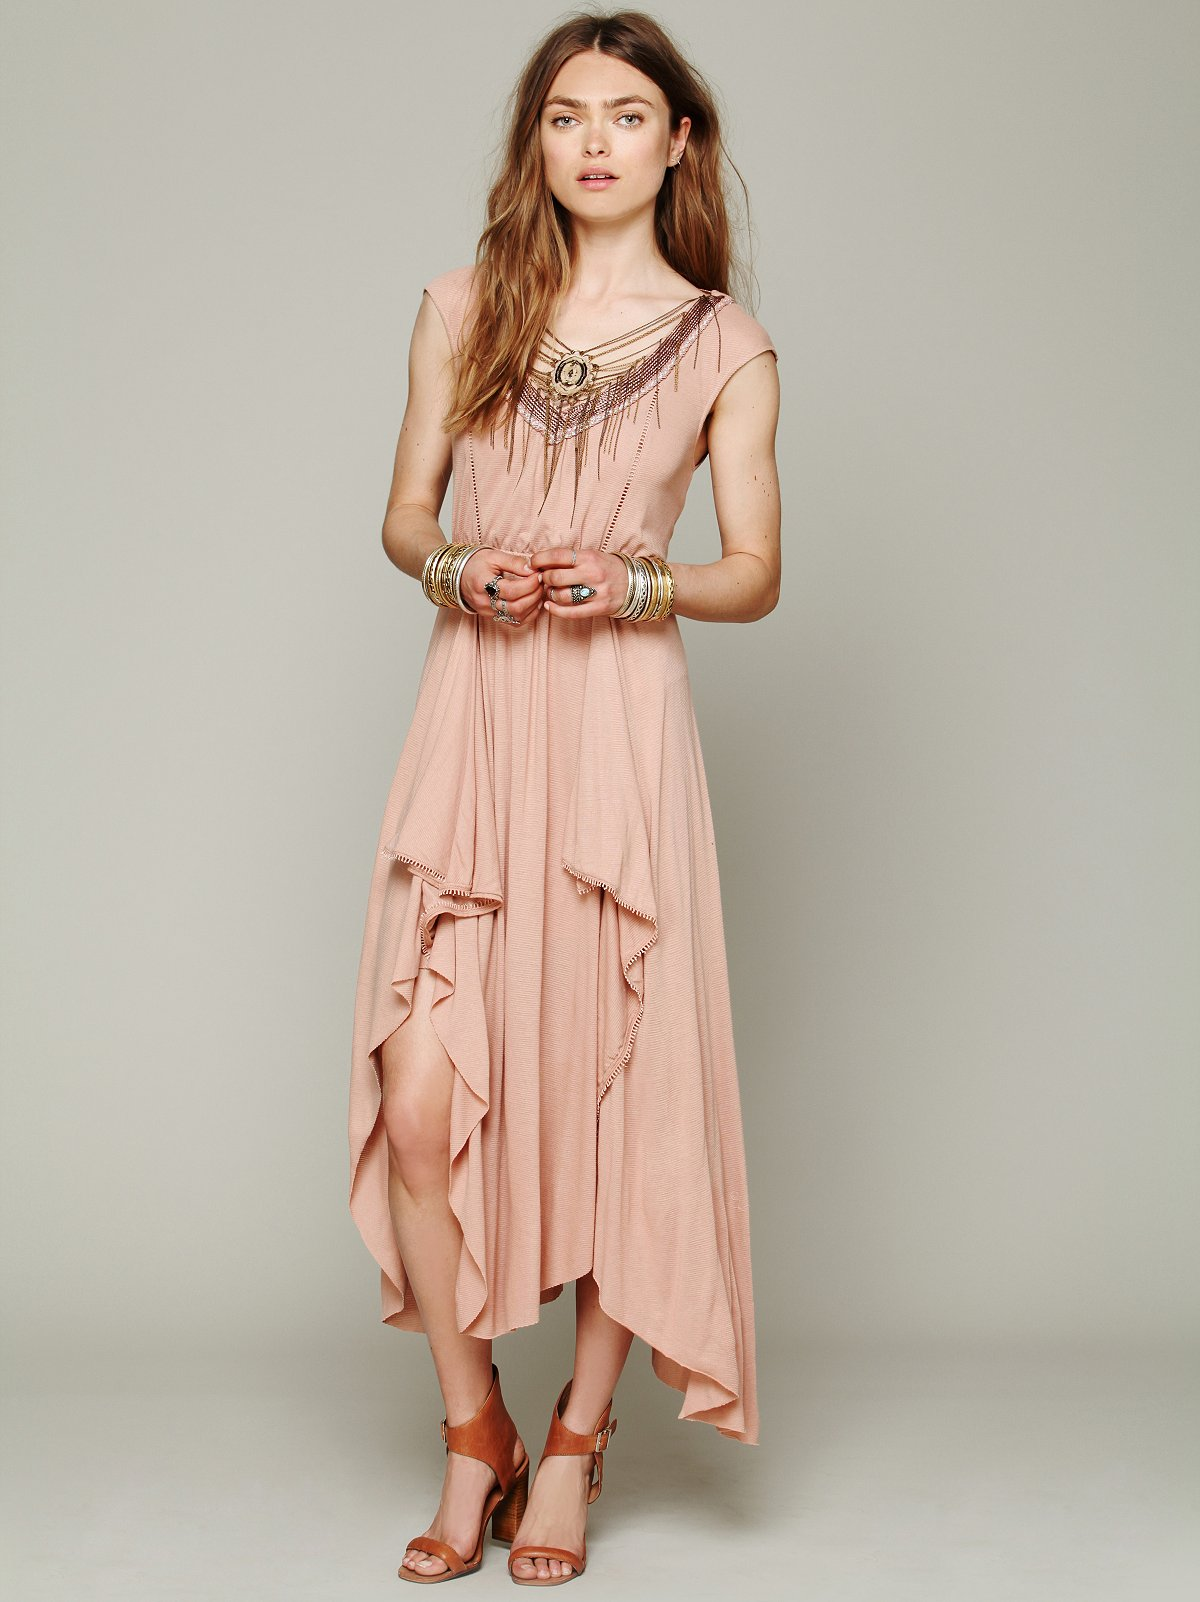 FP New Romantics Cleo Maxi Dress